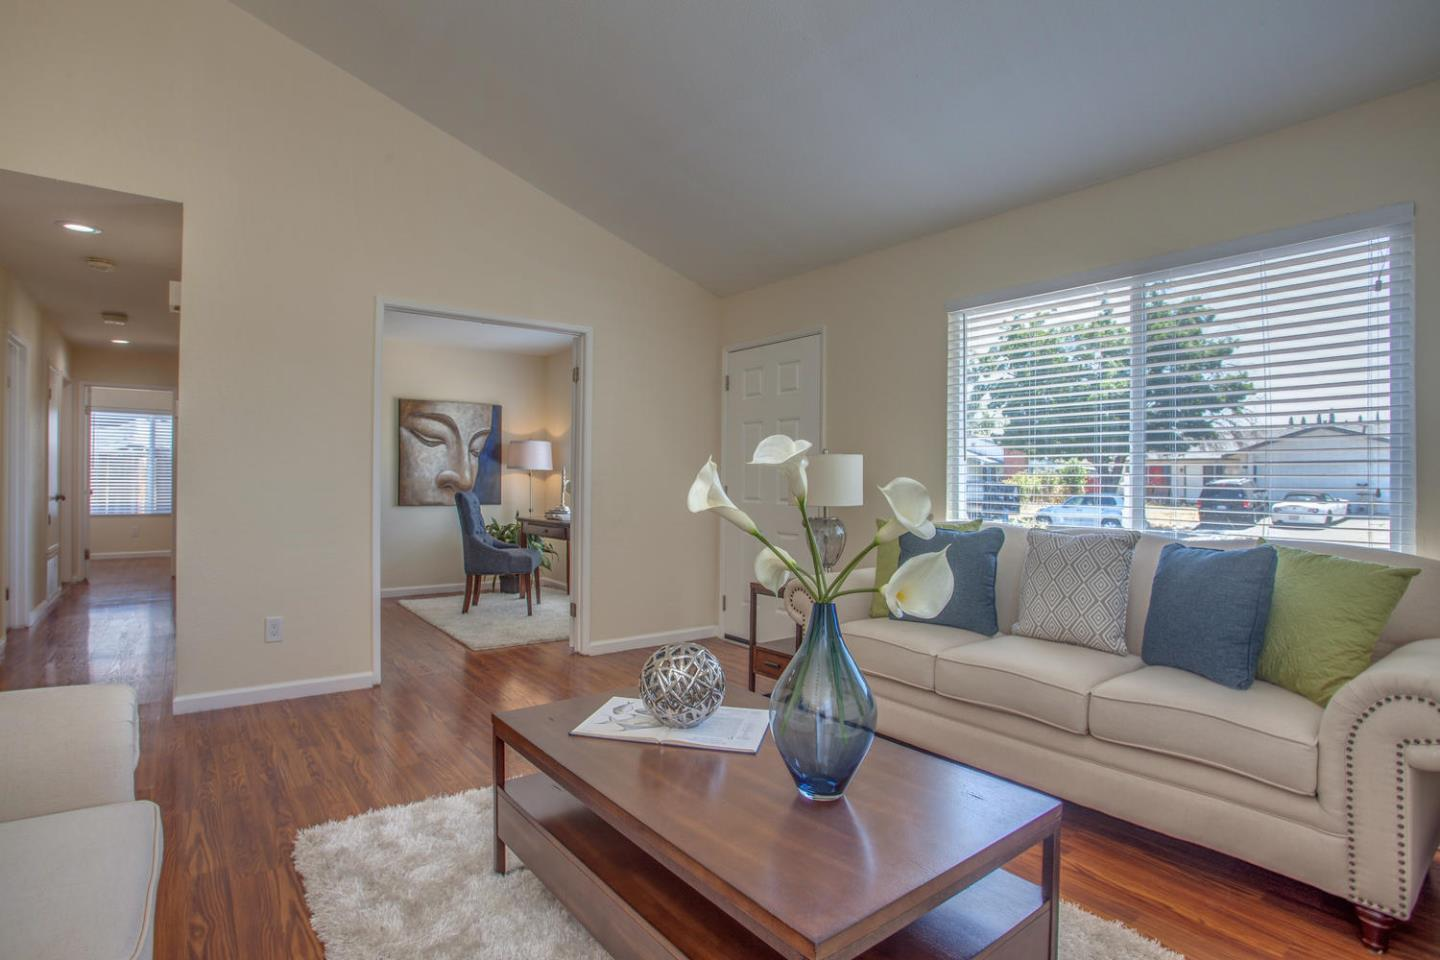 Additional photo for property listing at 2728 Cramer Circle  San Jose, California 95111 United States